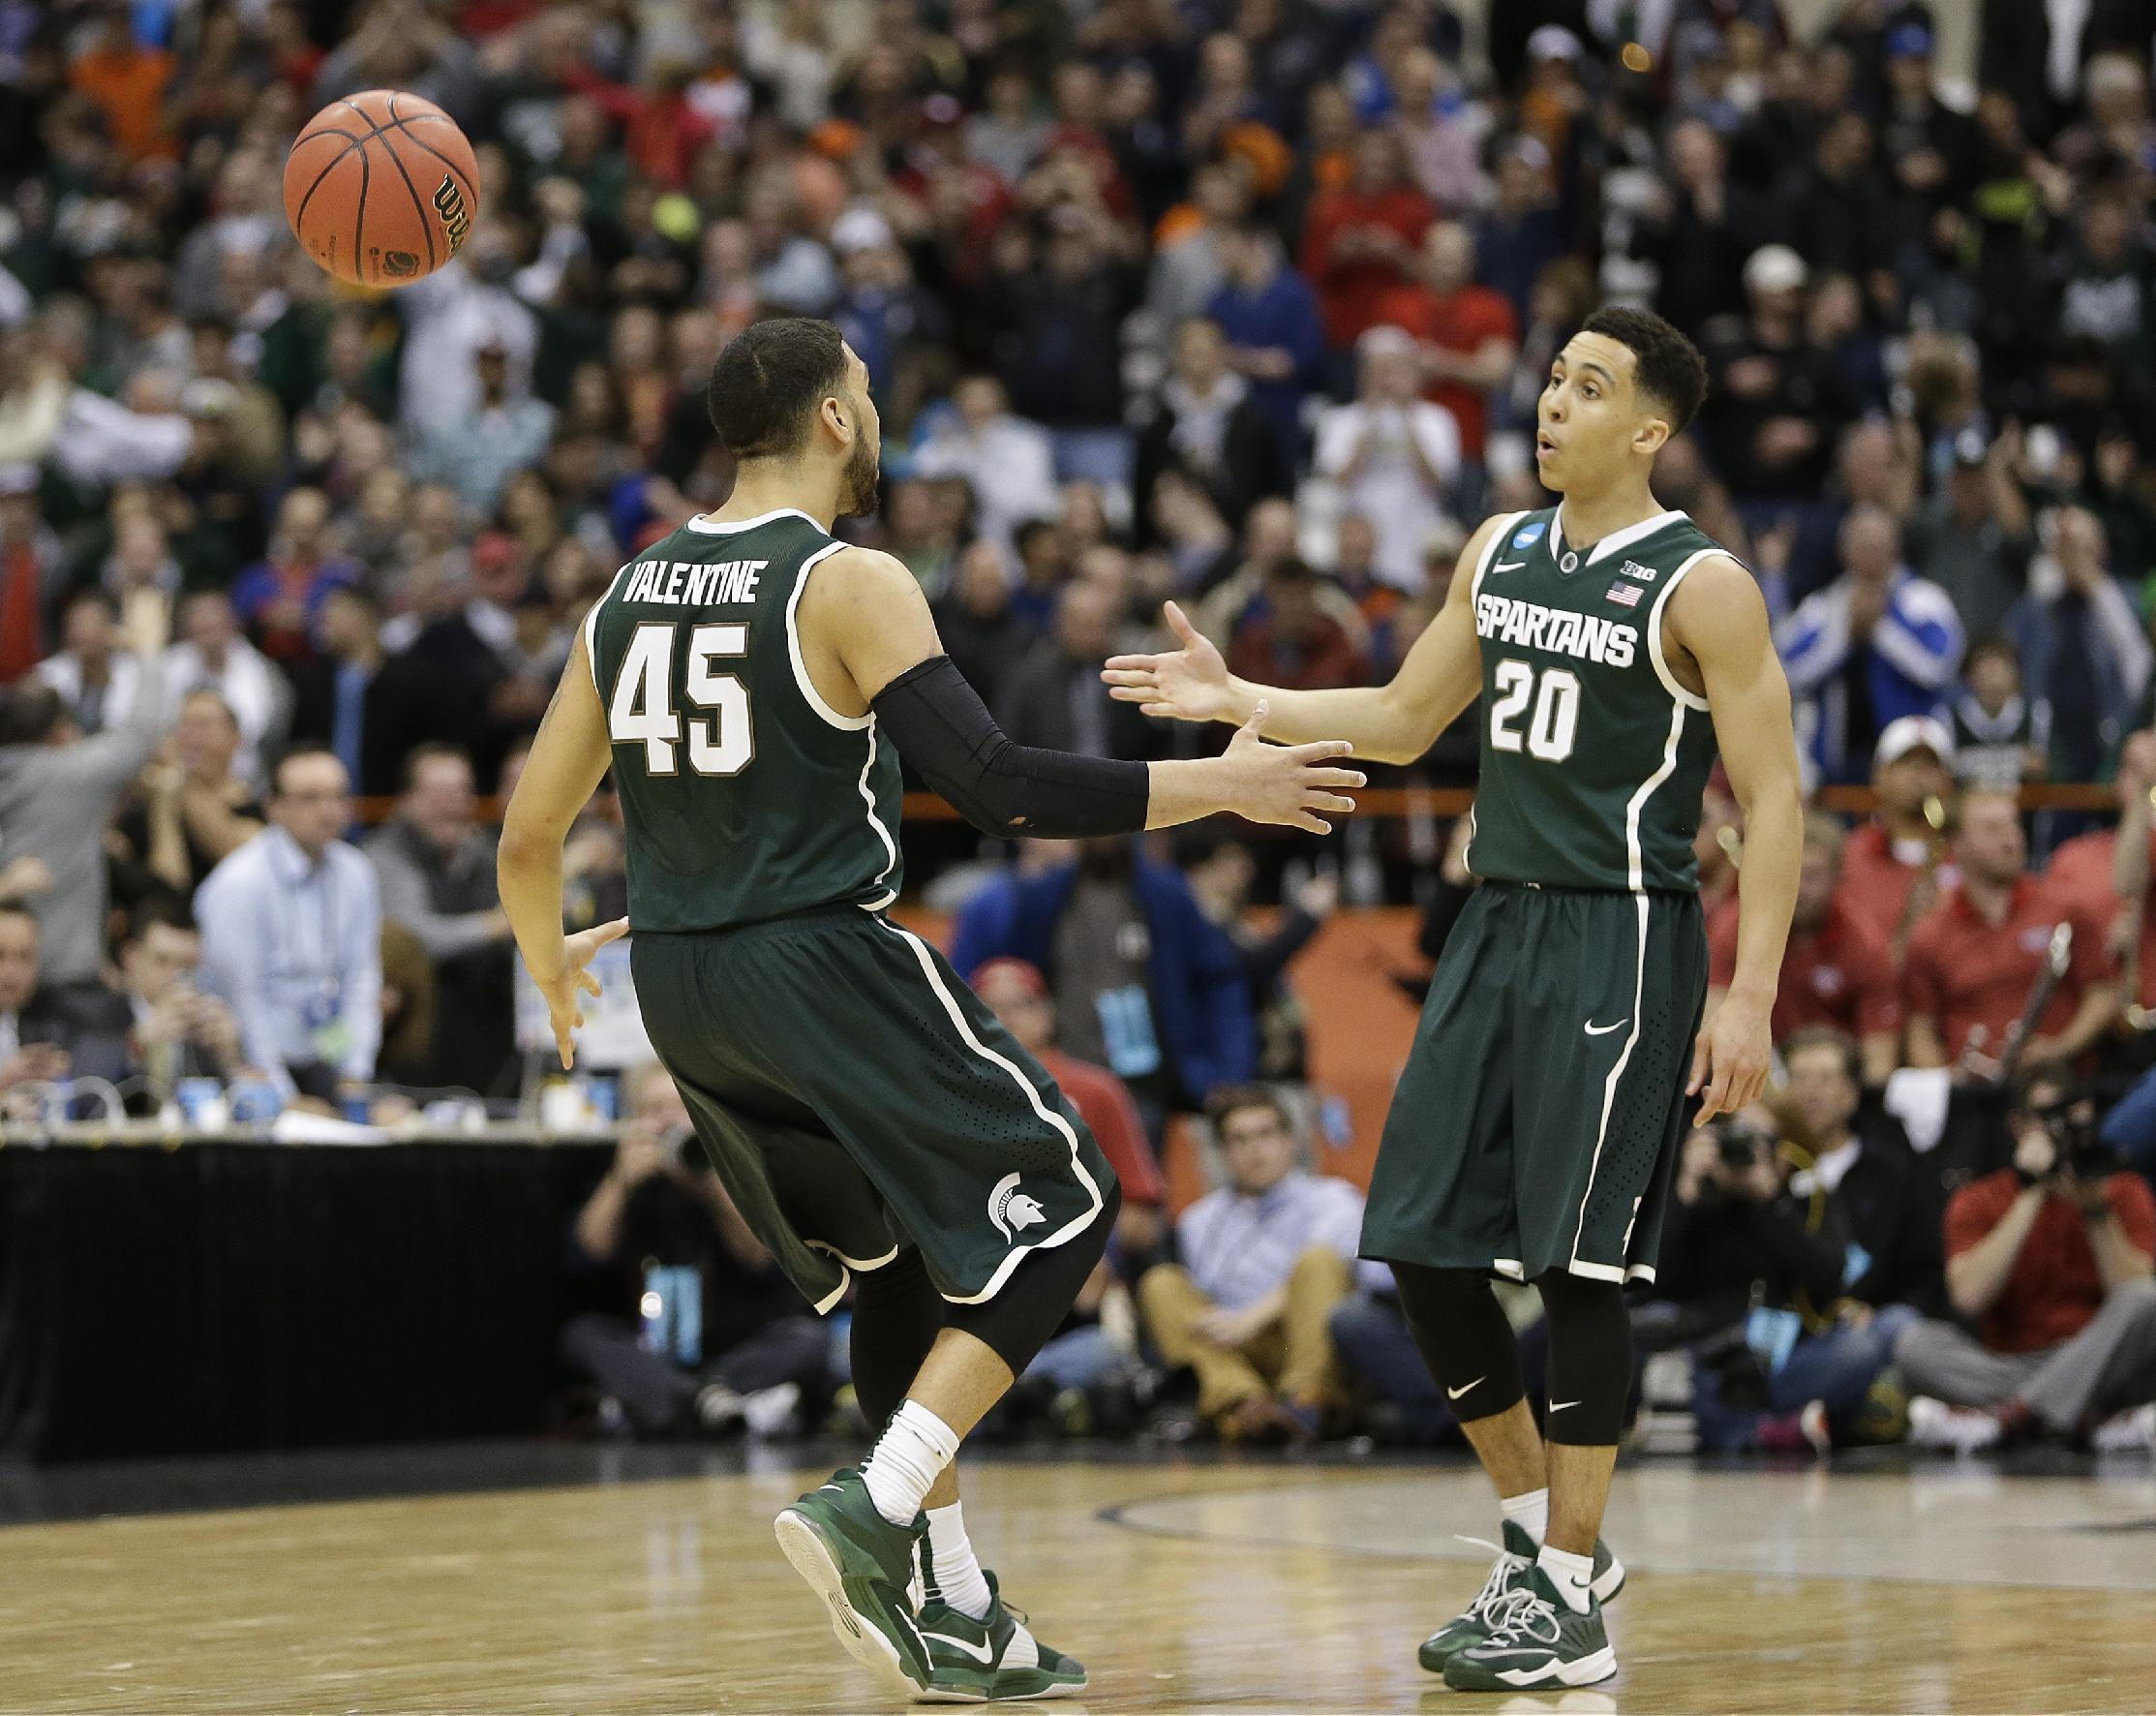 Tom Izzo does it again: Michigan State back in Elite Eight after beating Sooners